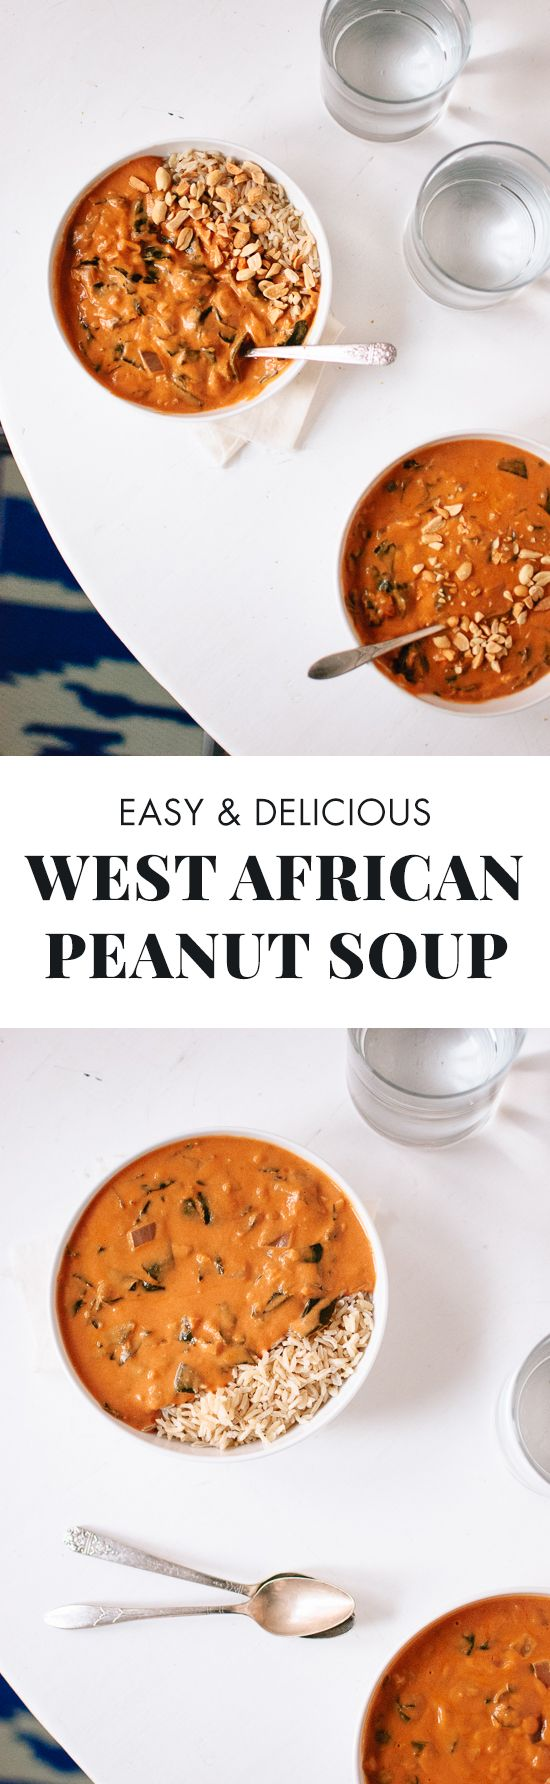 Africans, Peanuts and Soups on Pinterest